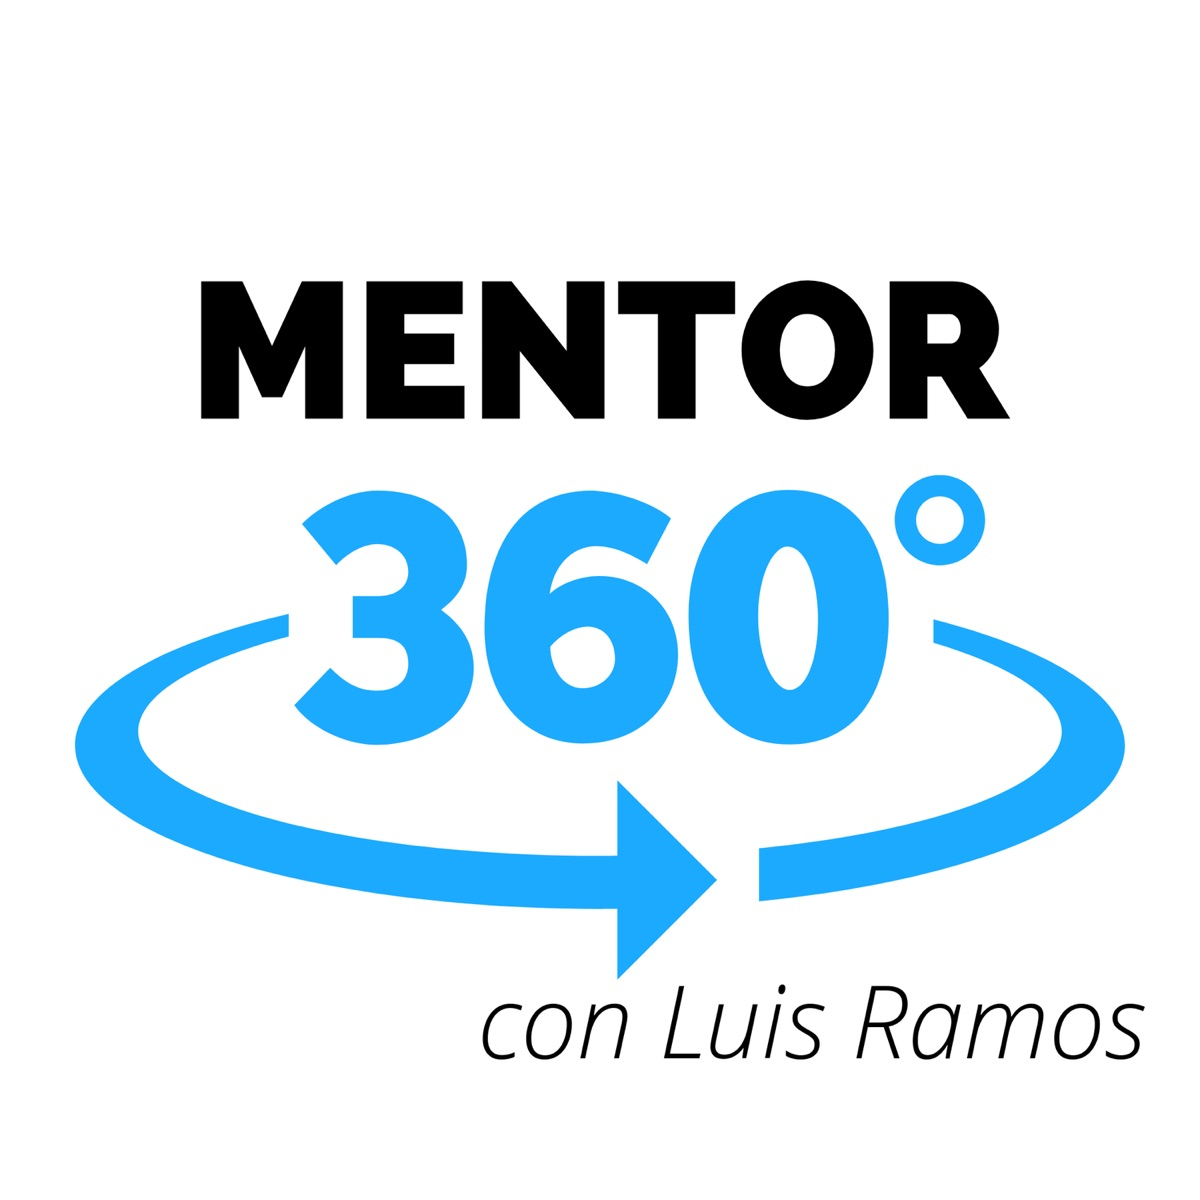 La Mejor Estrategia de Marketing para Tu Negocio, con Joan Boluda - MARKETING - MENTOR360